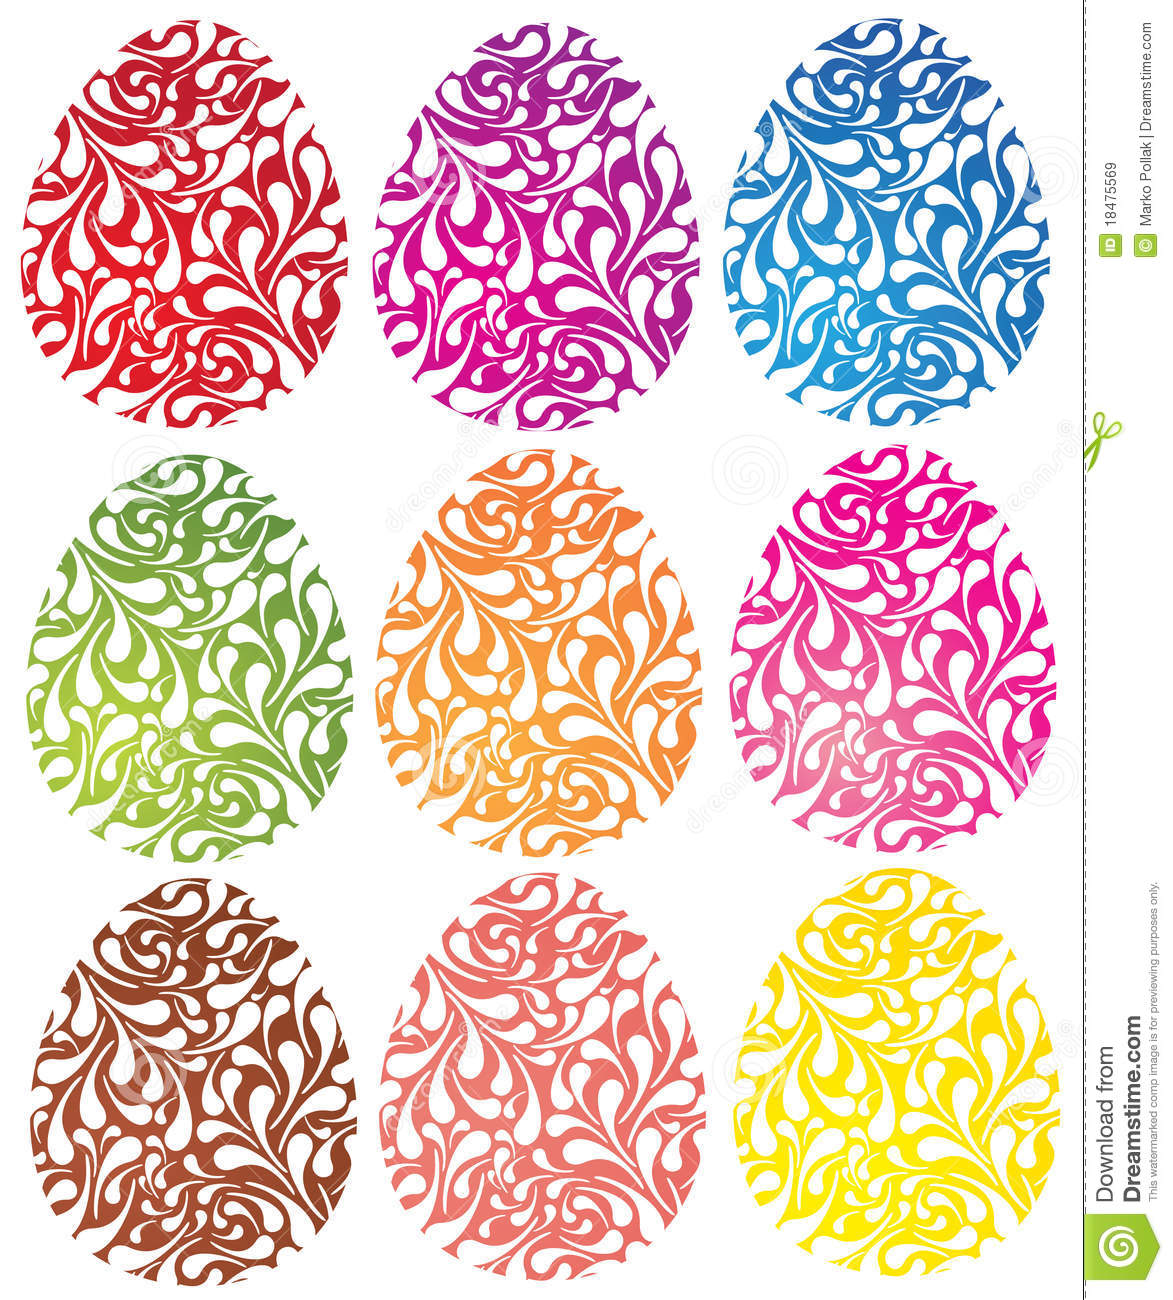 Colorful Easter Egg Set Royalty Free Stock Images   Image  18475569 5tL0snsR